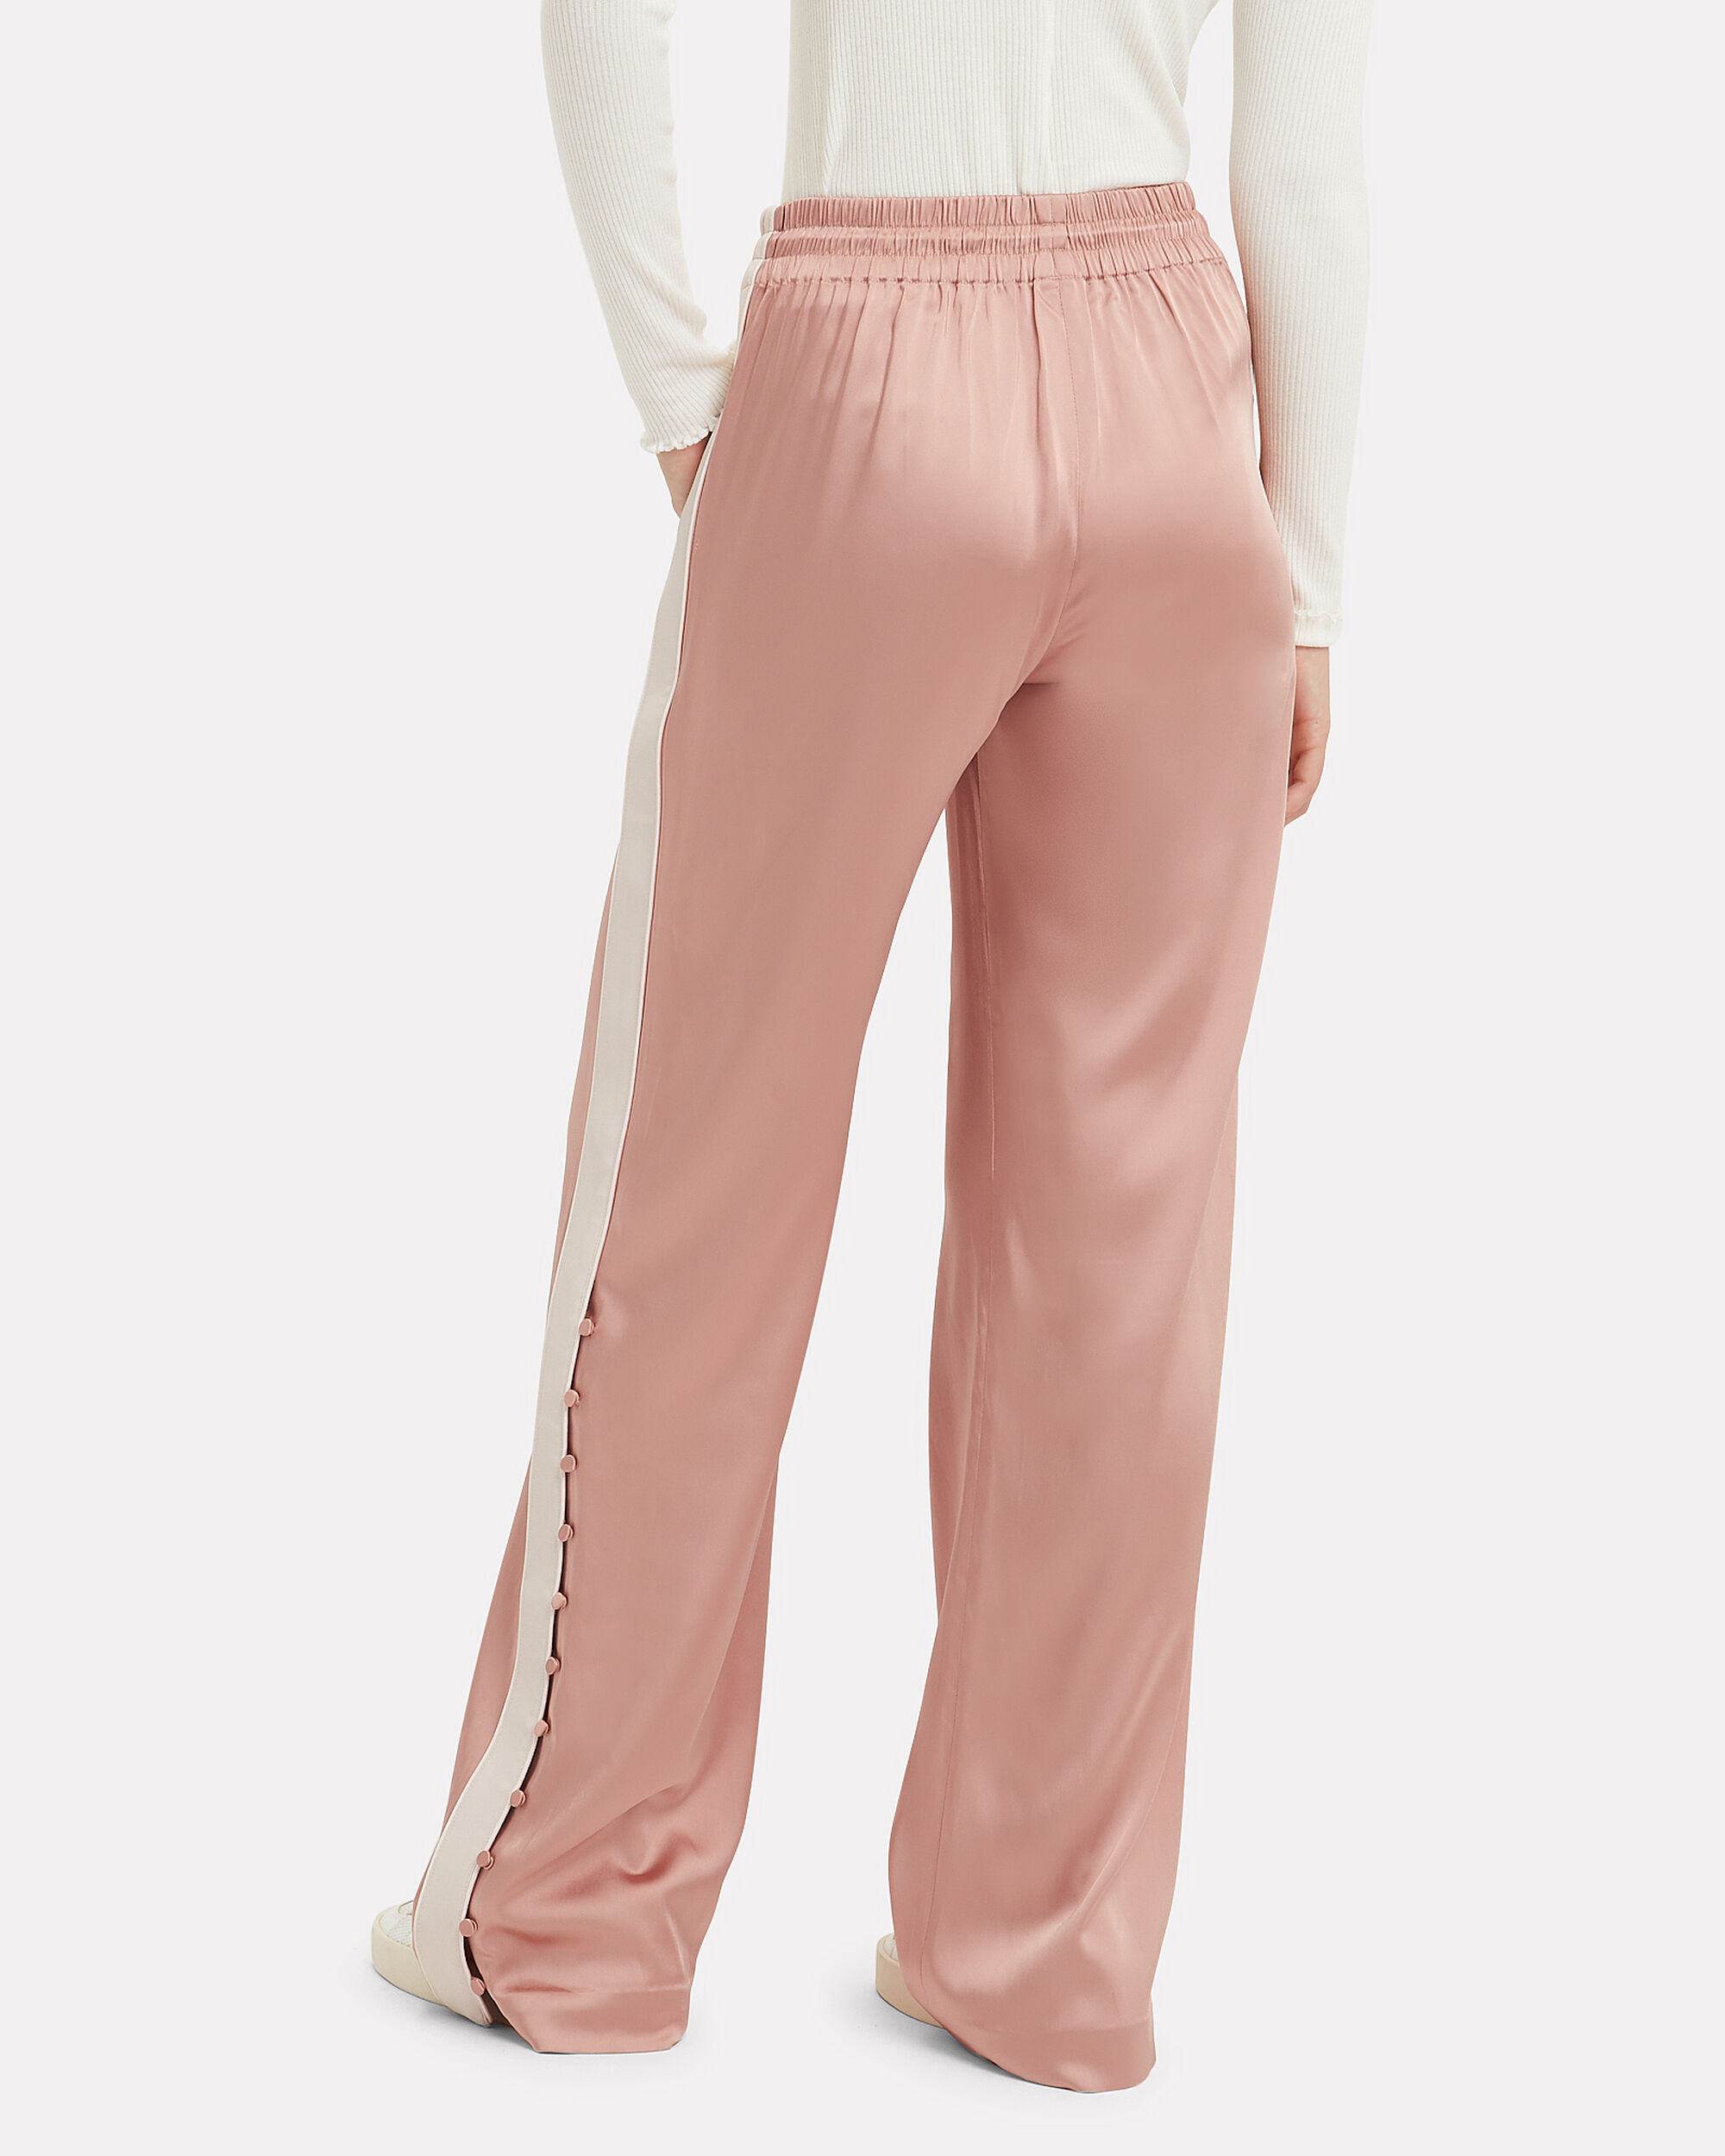 Deconstructed Satin Track Pants, BLUSH/IVORY, hi-res